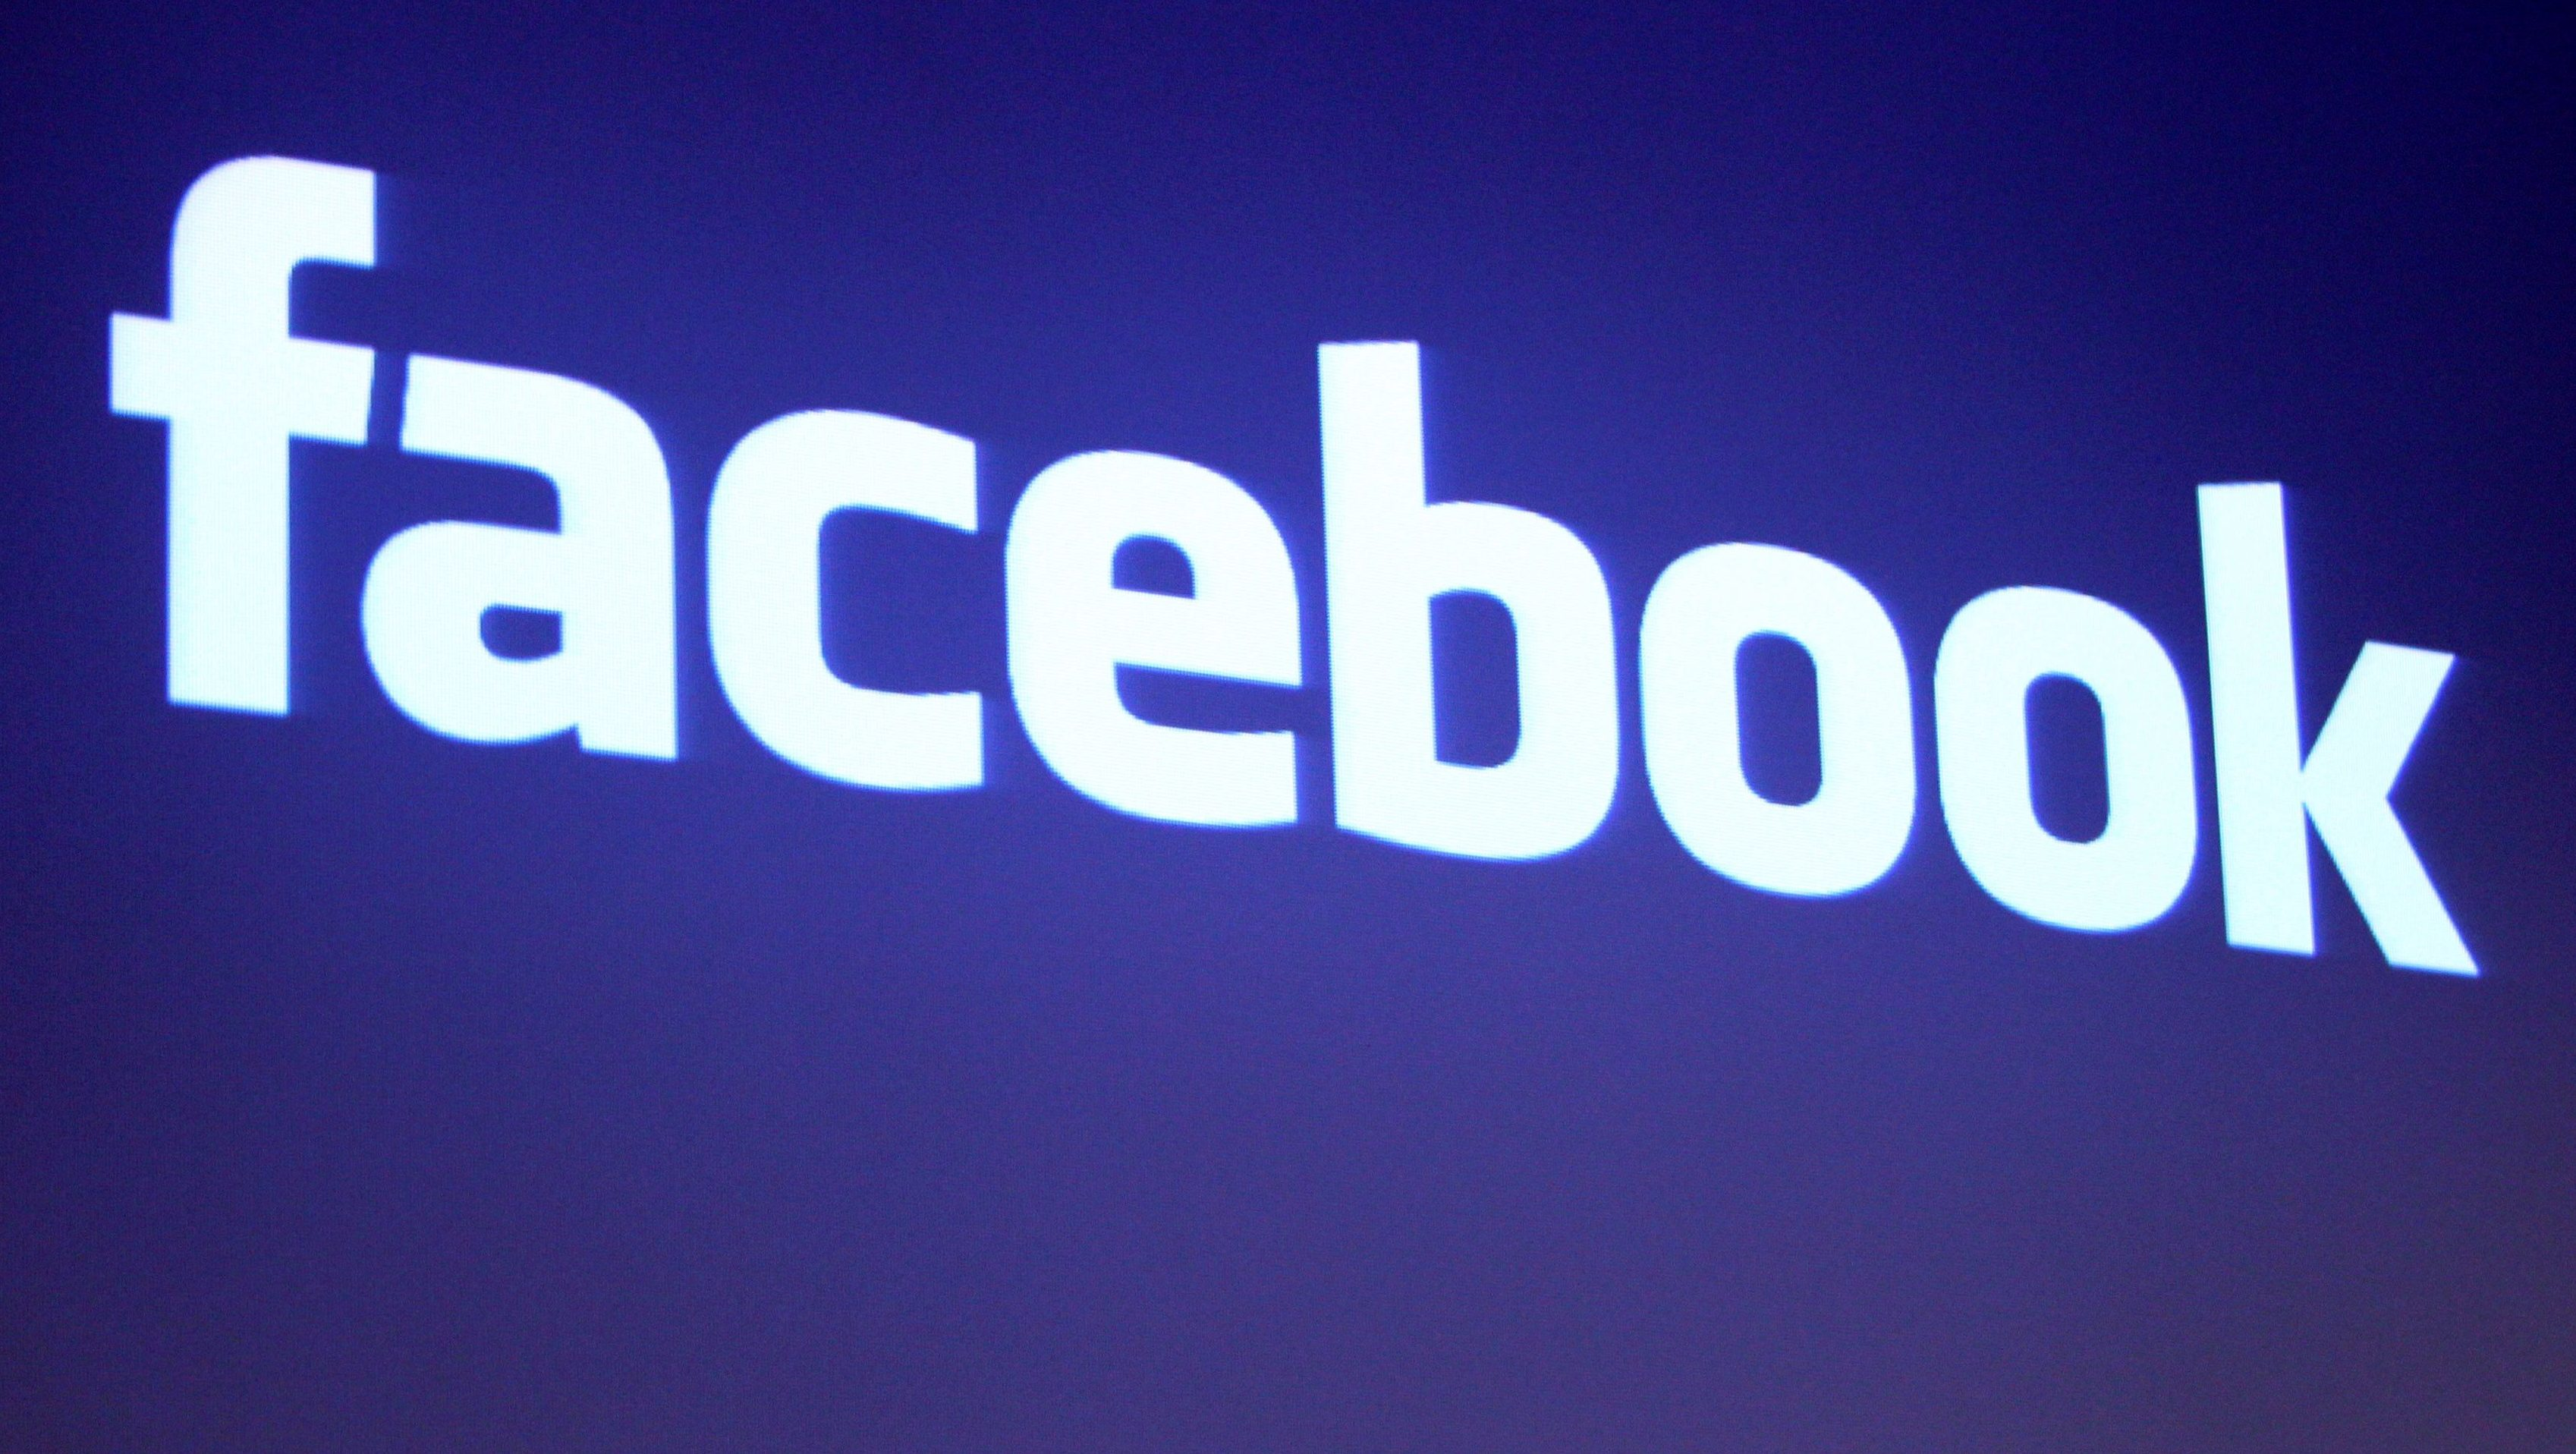 FILE PHOTO - The Facebook logo is shown at Facebook headquarters in Palo Alto, California, U.S. May 26, 2010. REUTERS/Robert Galbraith/File Photo - RC1AE080F140